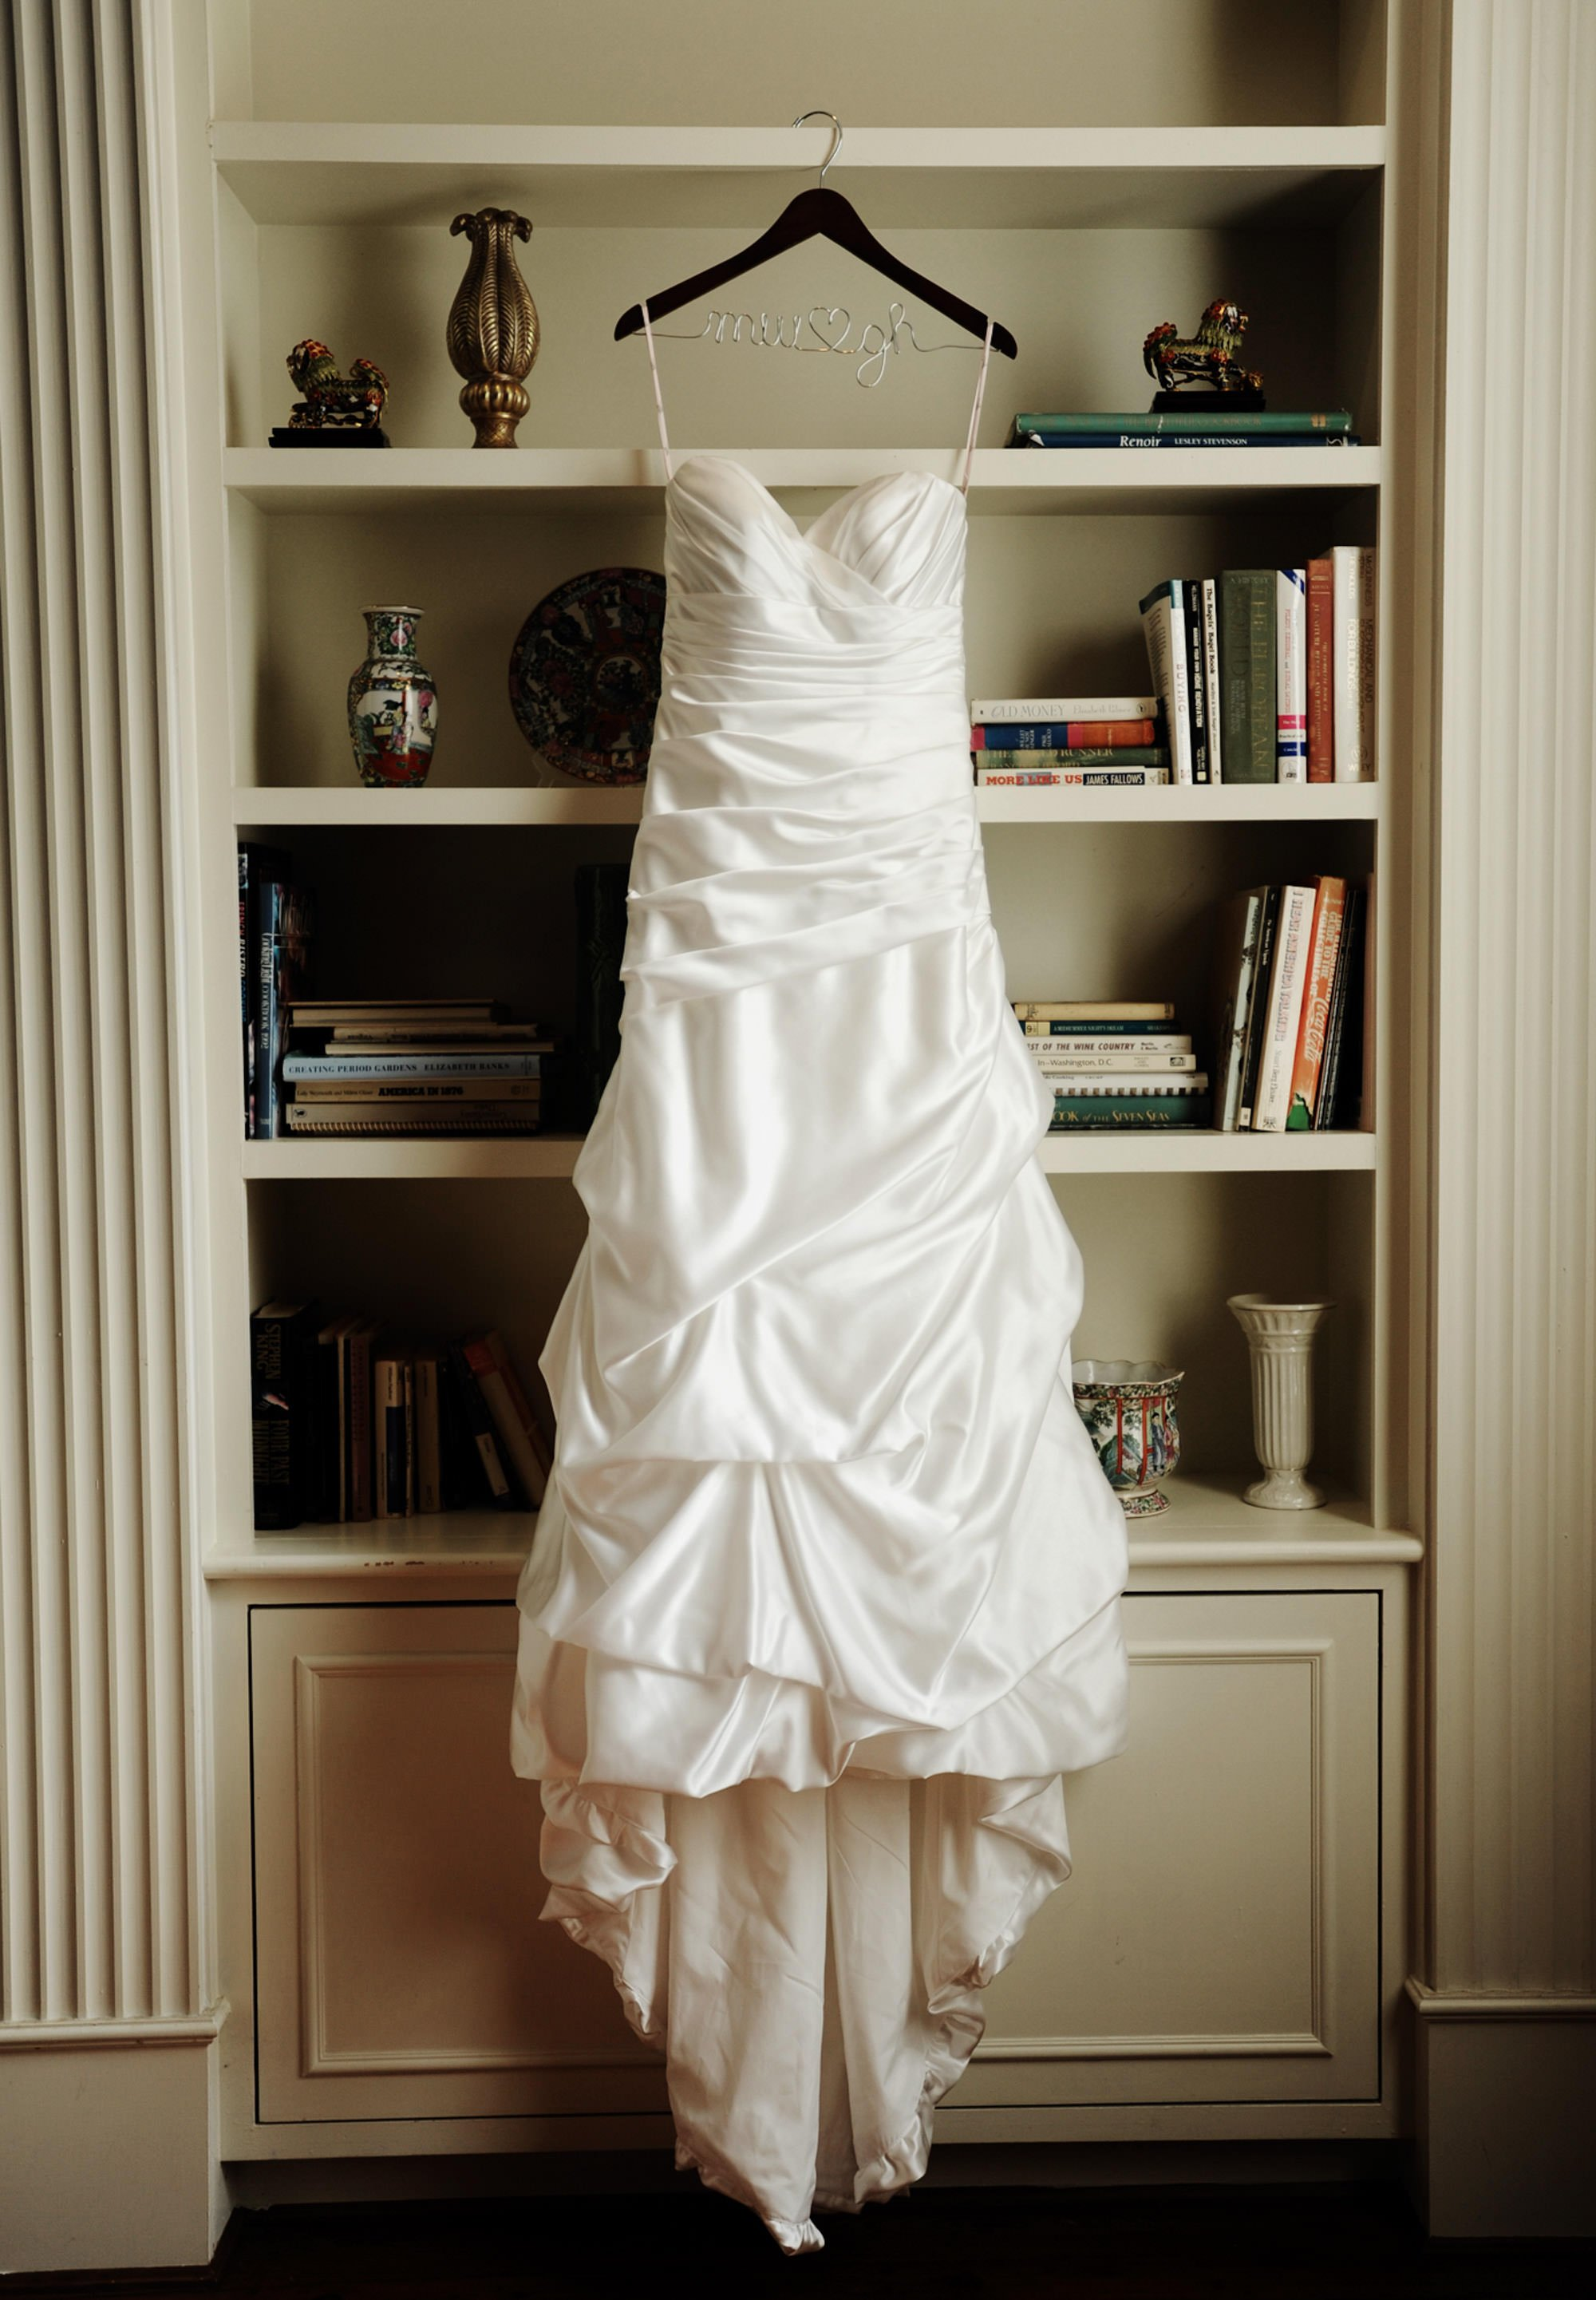 The bride's dress during this Whitehall Estate wedding.